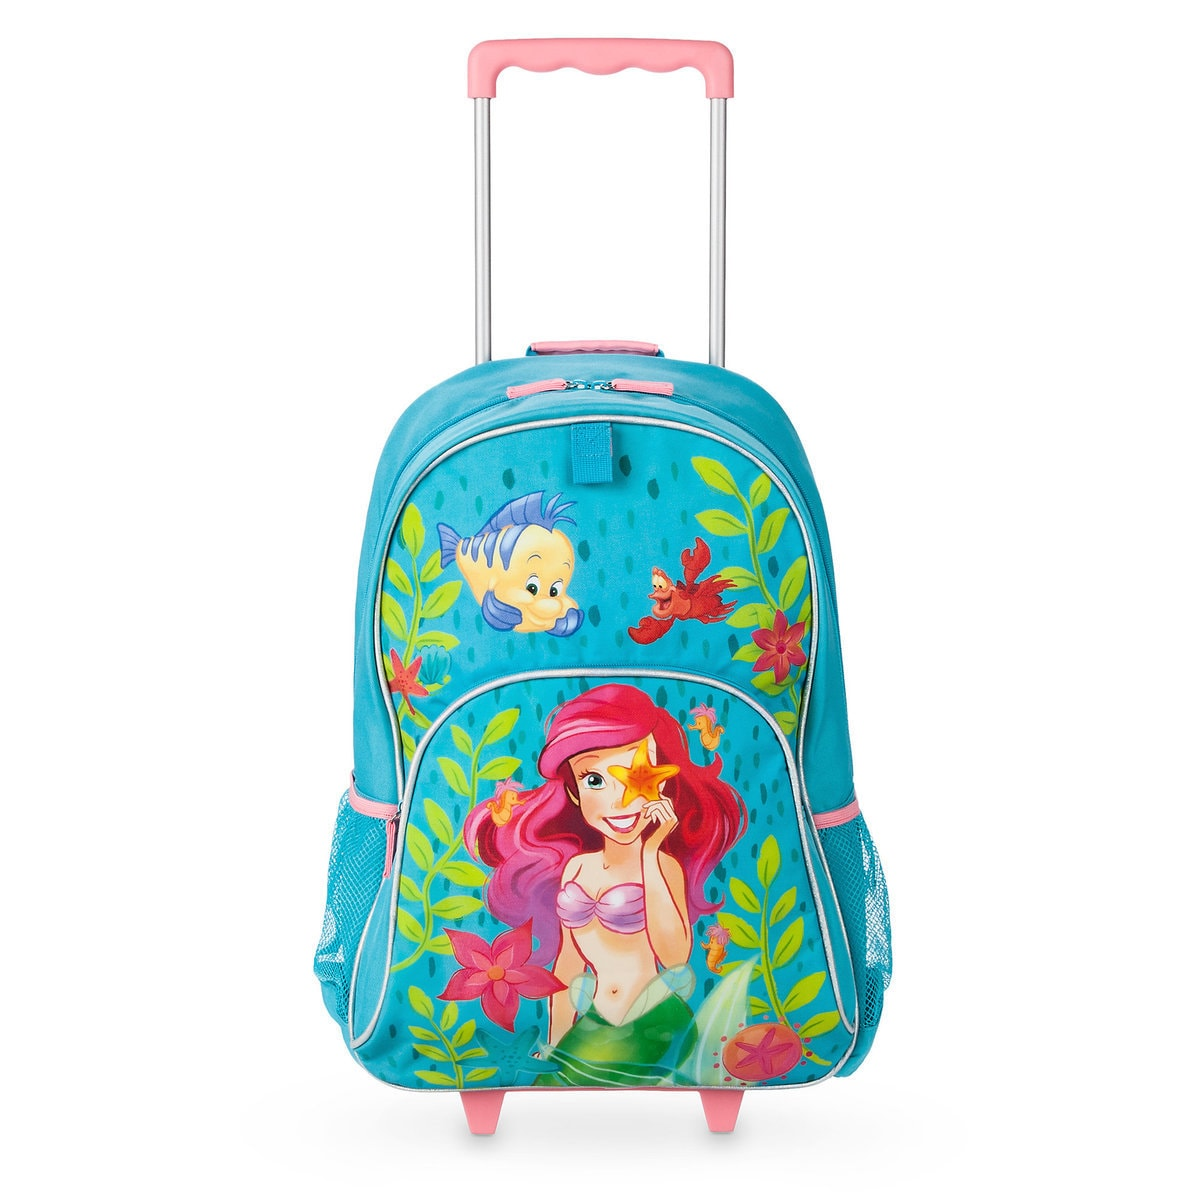 c7e3a0e3a65 Product Image of The Little Mermaid Rolling Backpack - Personalizable   1